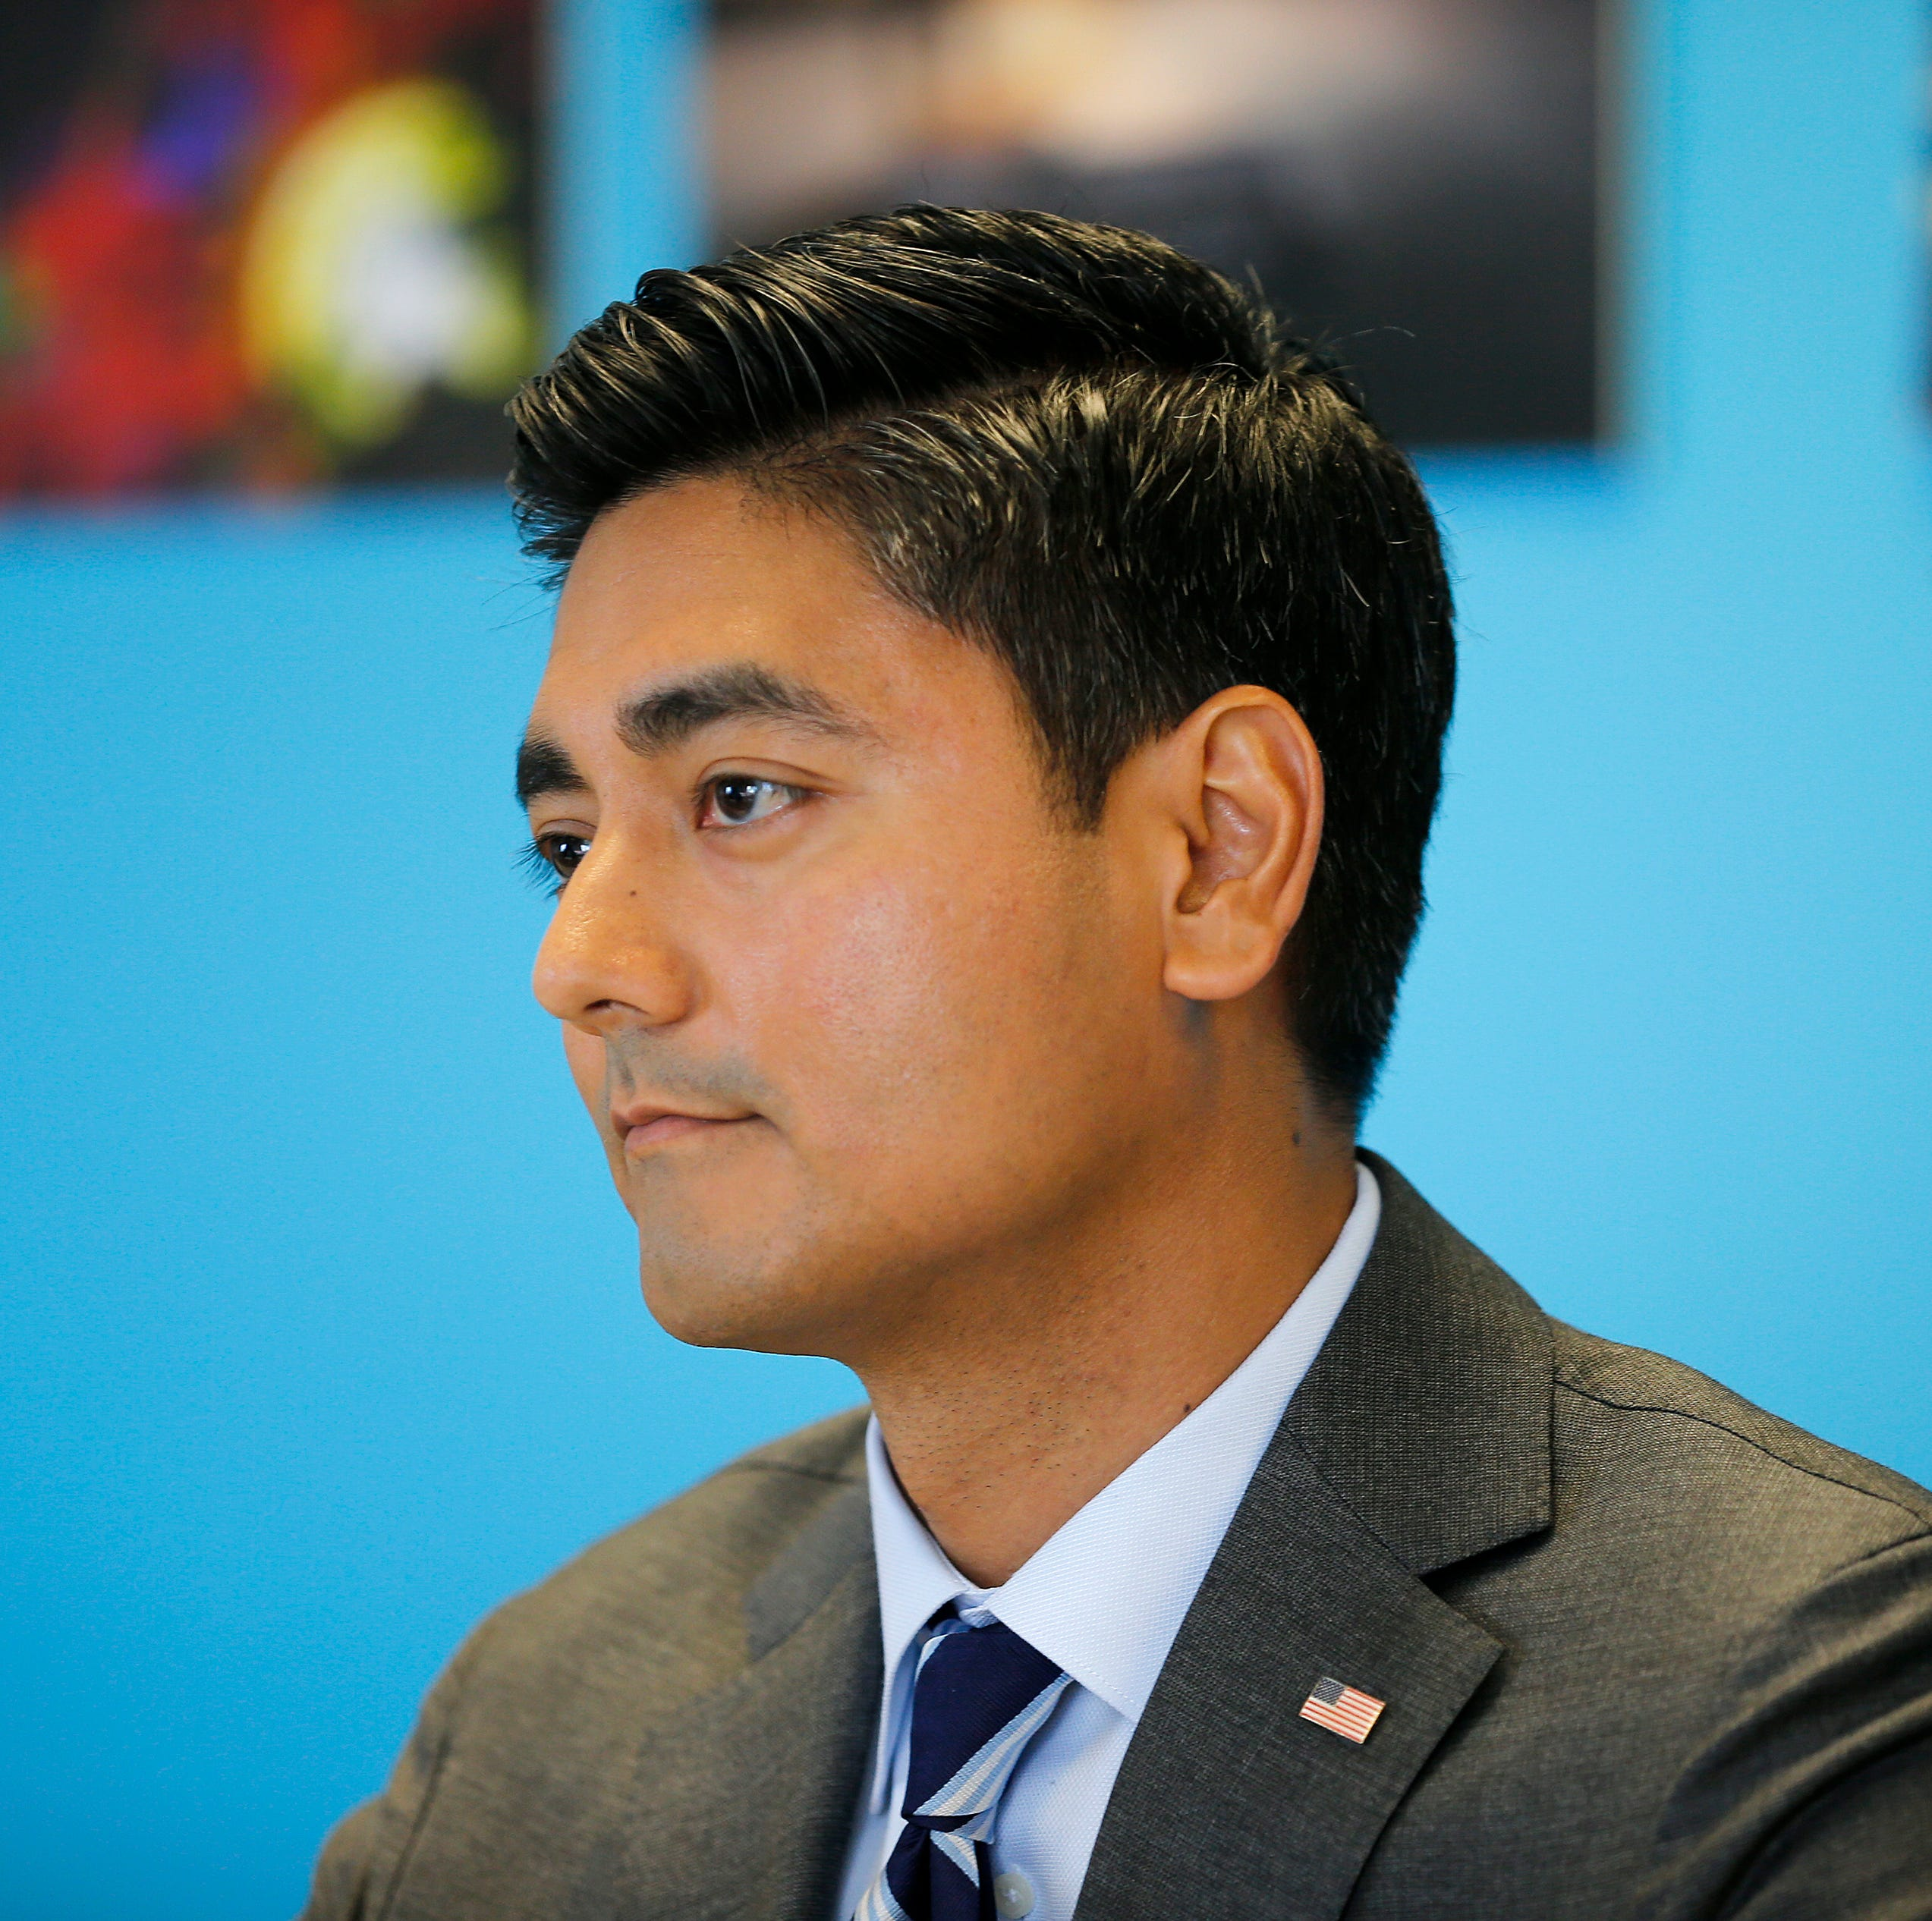 Aftab Pureval attorneys want to stop Ohio Elections Commission hearing